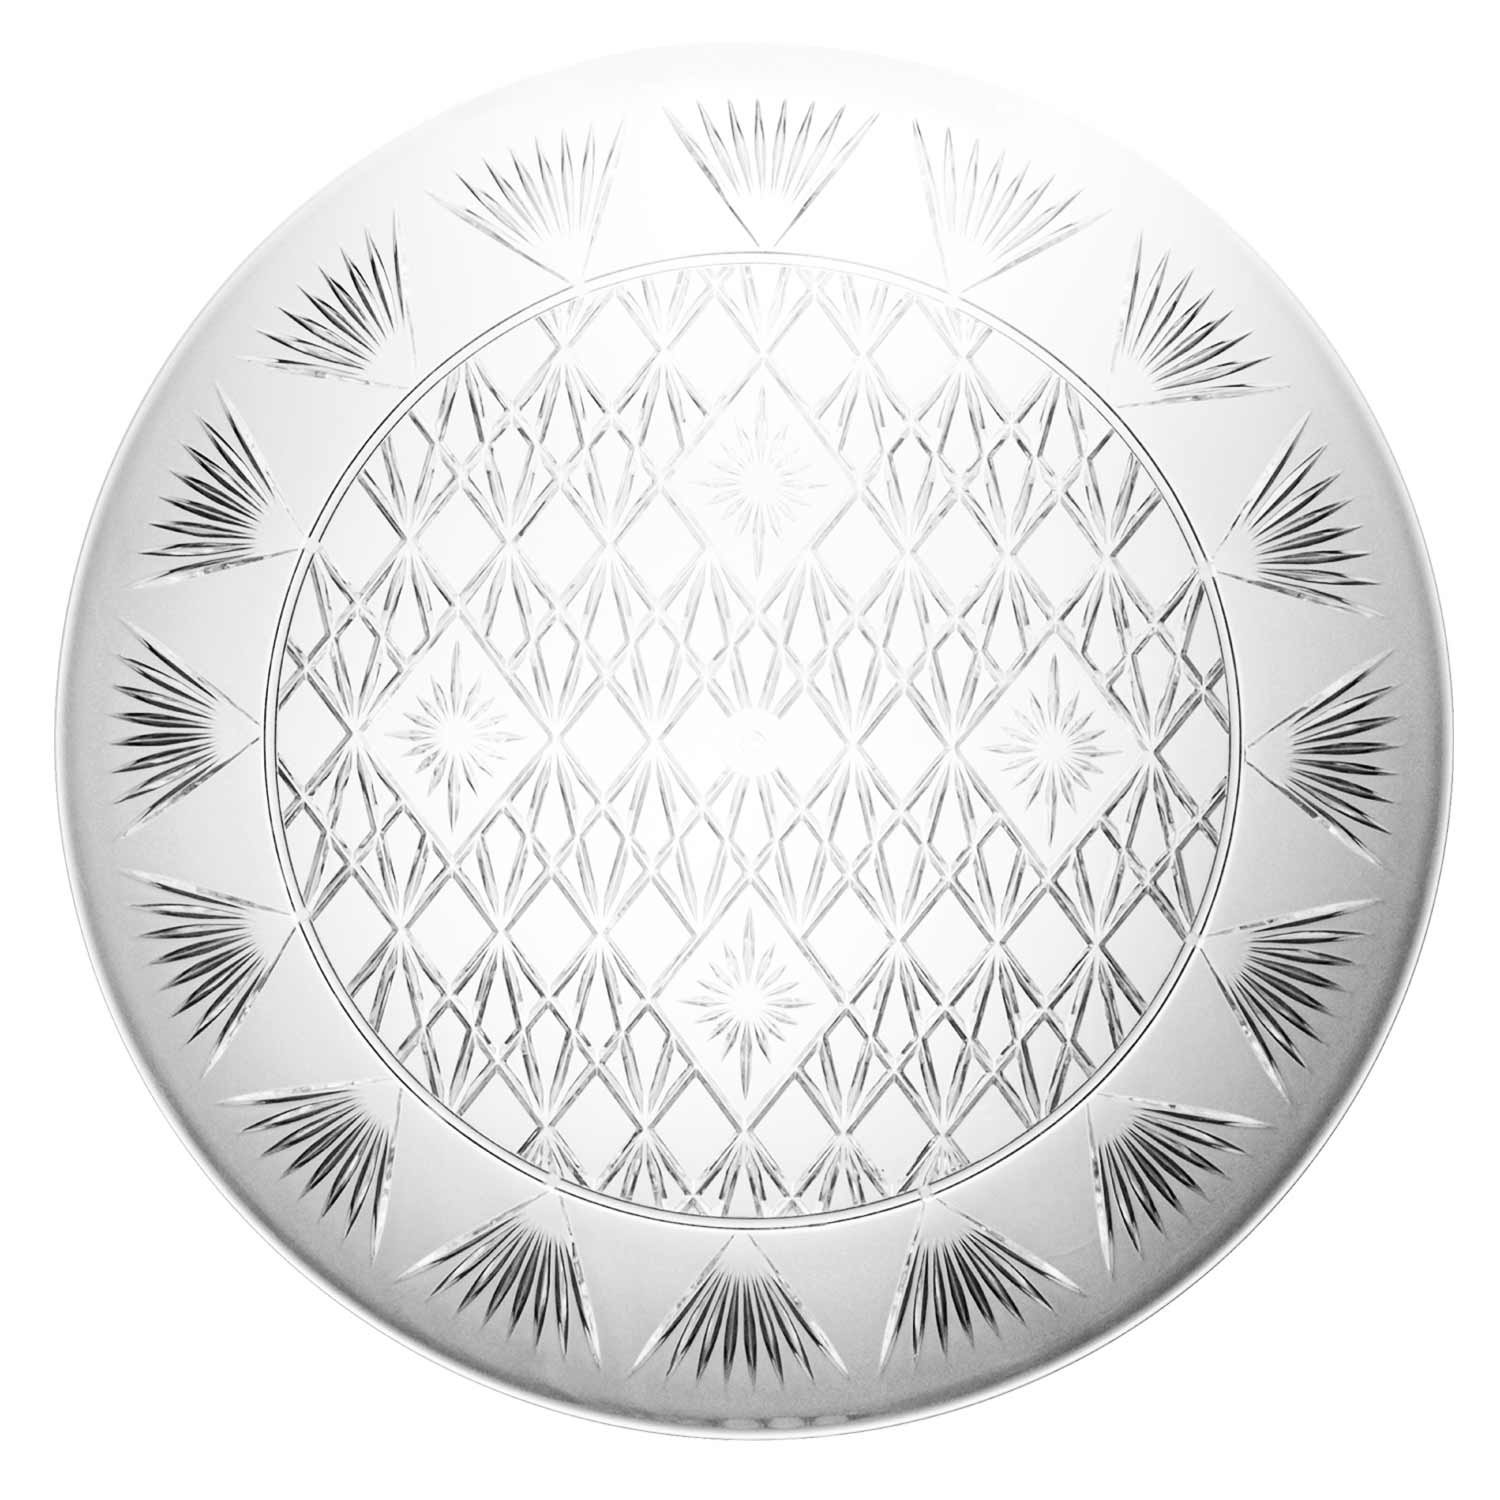 Party Essentials N1612 Heavy Duty Diamond Cut Plastic Round Tray, 16'' Diameter, Crystal Clear (Case of 12)